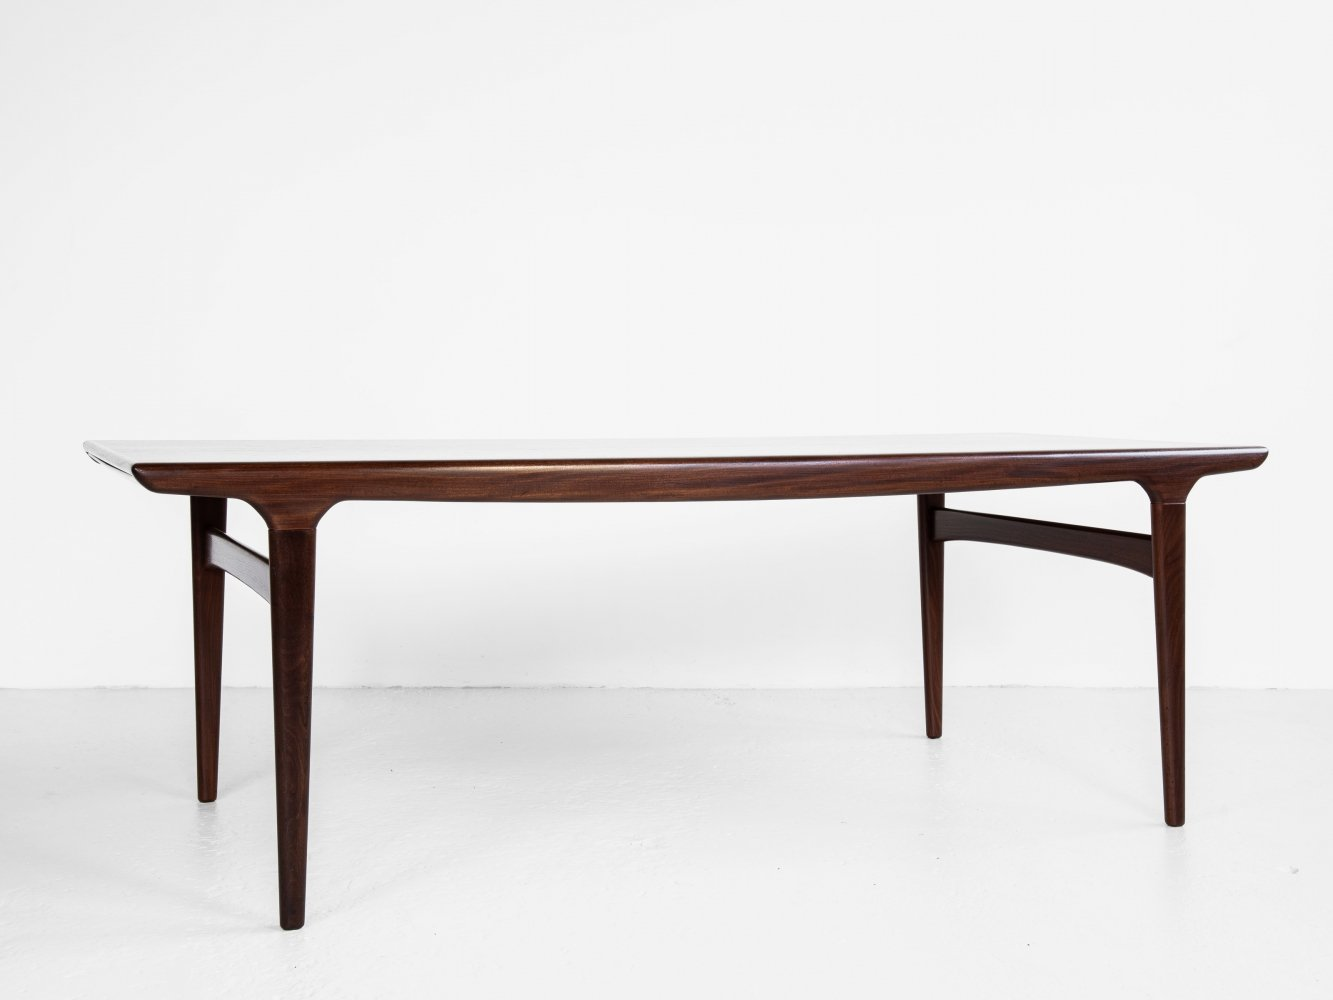 Midcentury Danish XL dining table by Johannes Andersen for Uldum, 1960s